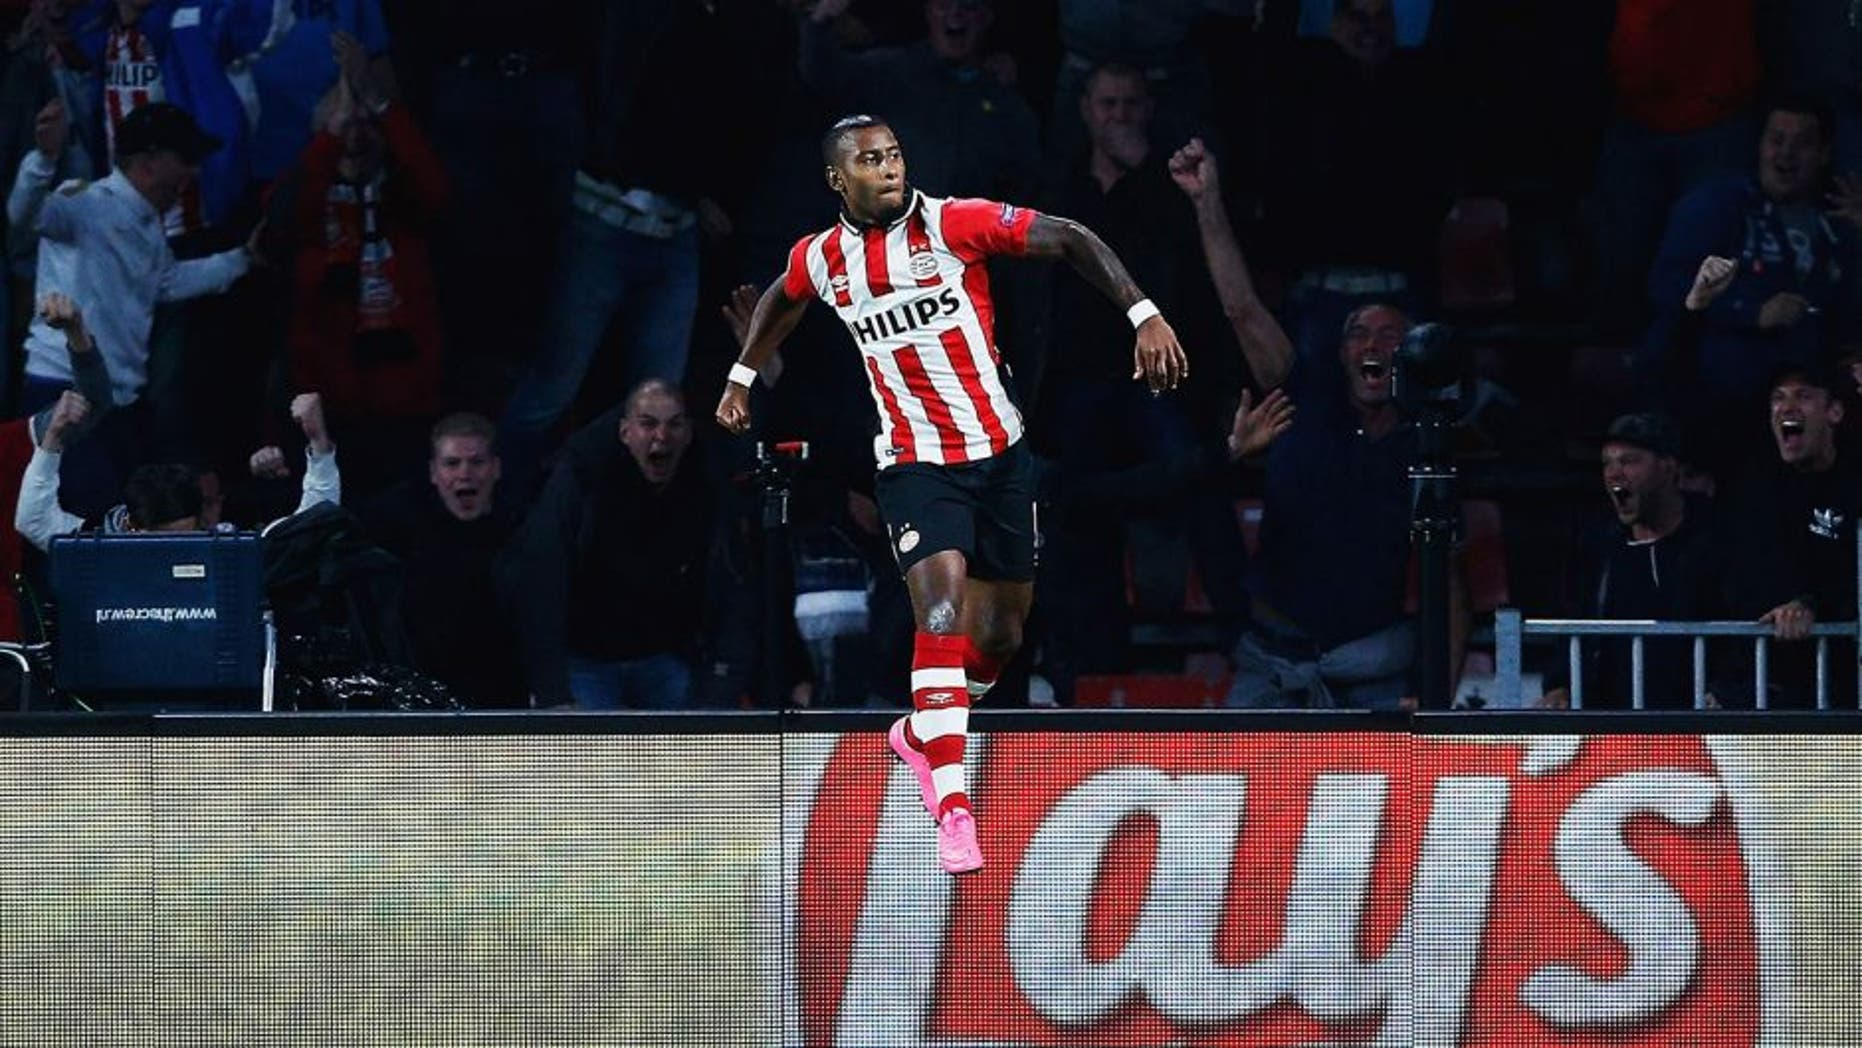 EINDHOVEN, NETHERLANDS - SEPTEMBER 15: Luciano Narsingh of PSV Eindhoven celebrates scoring his team's second goal during the UEFA Champions League Group B match between PSV Eindhoven and Manchester United at PSV Stadion on September 15, 2015 in Eindhoven, Netherlands. (Photo by Dean Mouhtaropoulos/Getty Images)